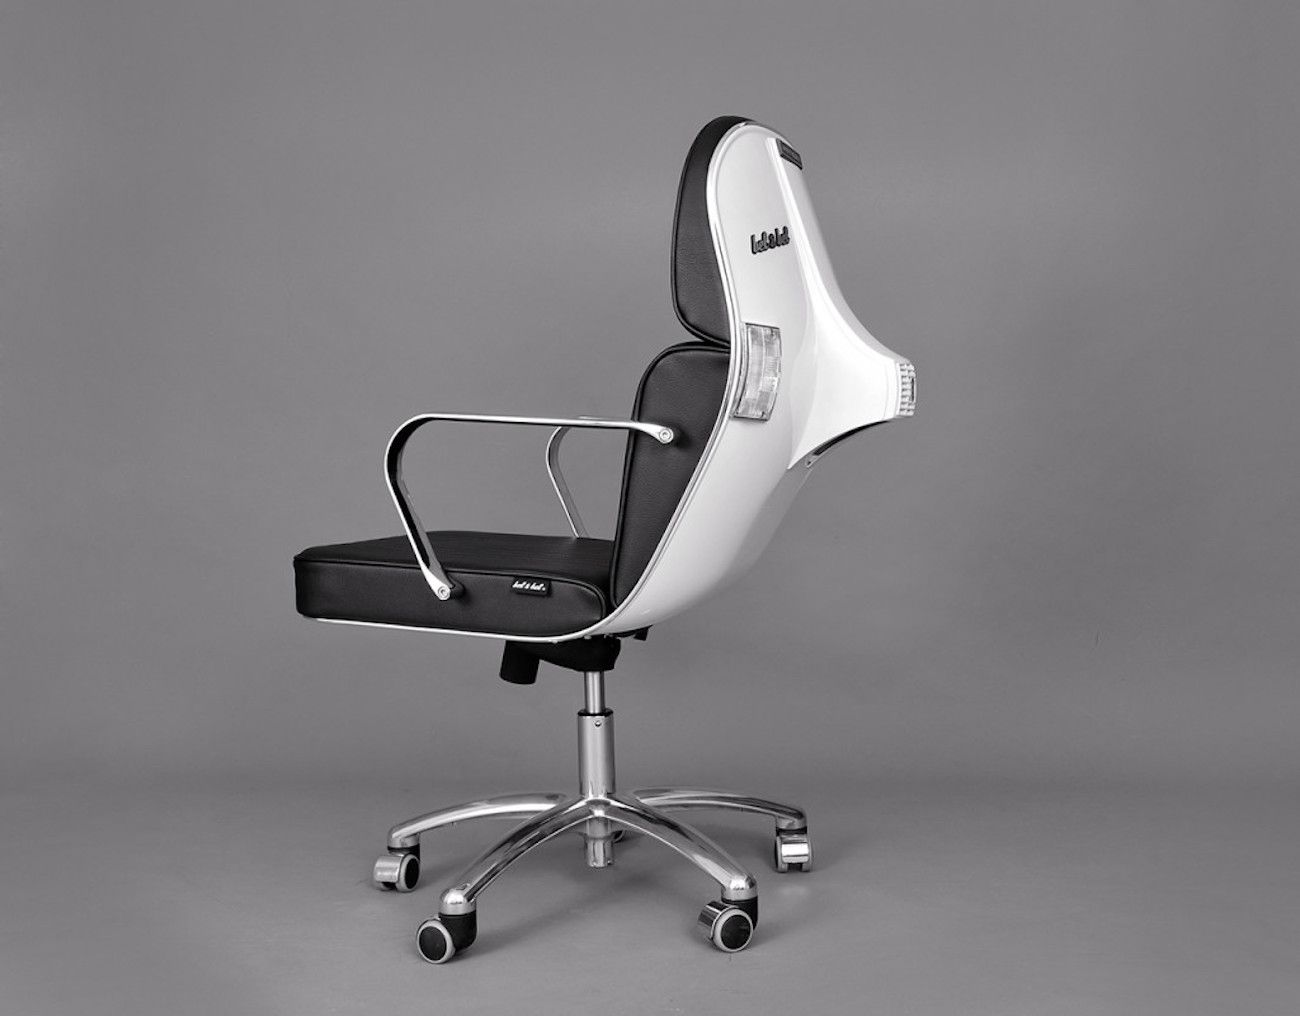 Vespa Bv 12 Chair Stylish Office Chairs Office Furniture Modern